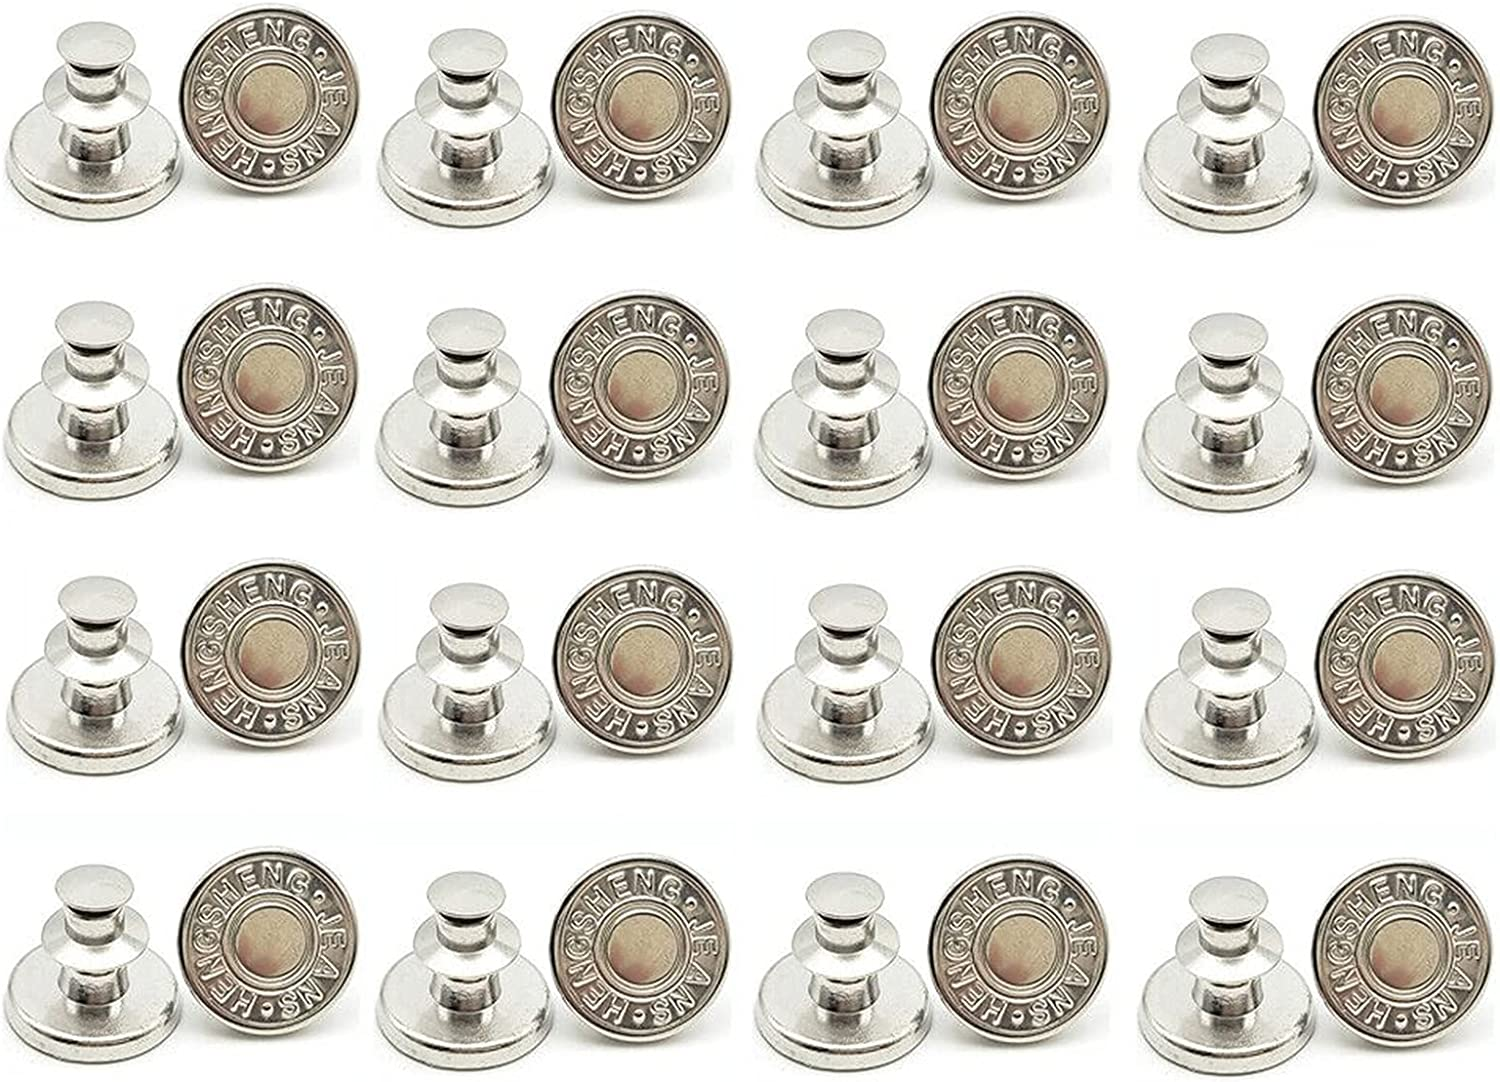 YWDKJGS Jeans Button Pins - Buttons Pins for Jeans - 16 Sets Jea